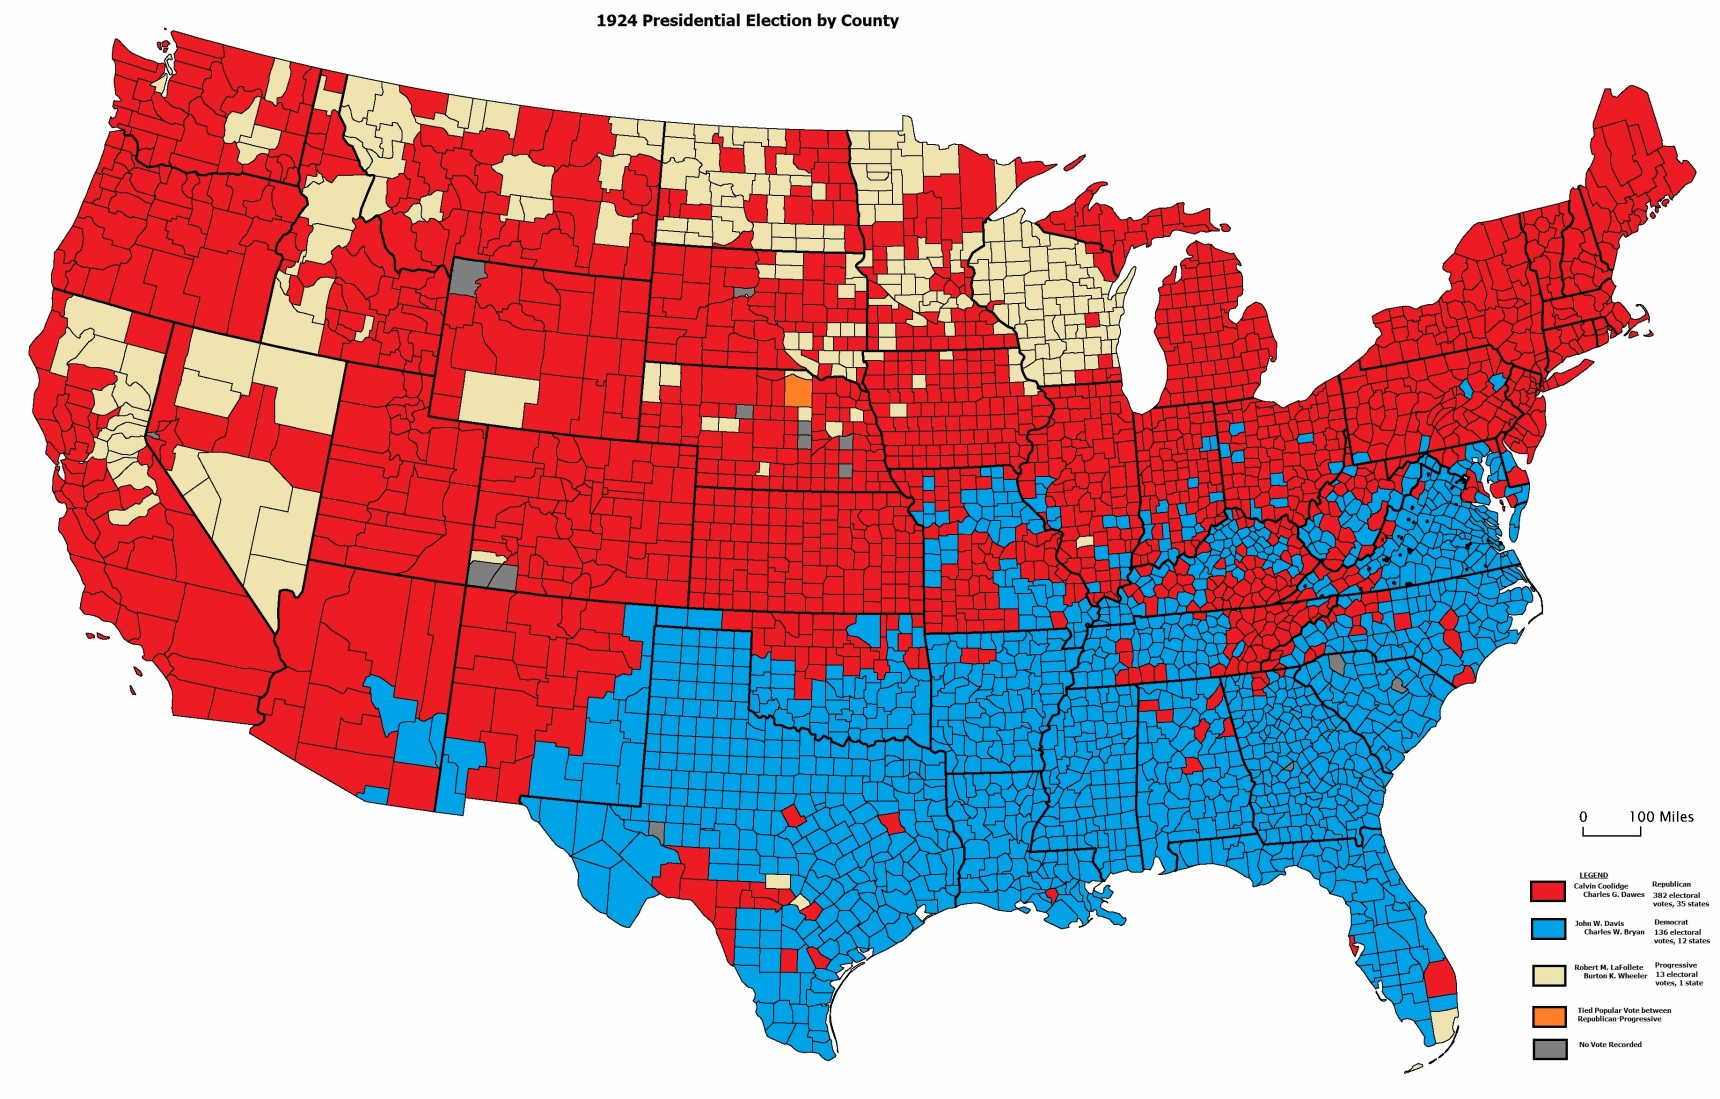 County-by-county breakdown of 1924 Election can be found in The Presidential Vote, 1896-1932 by Edgar E. Robinson.